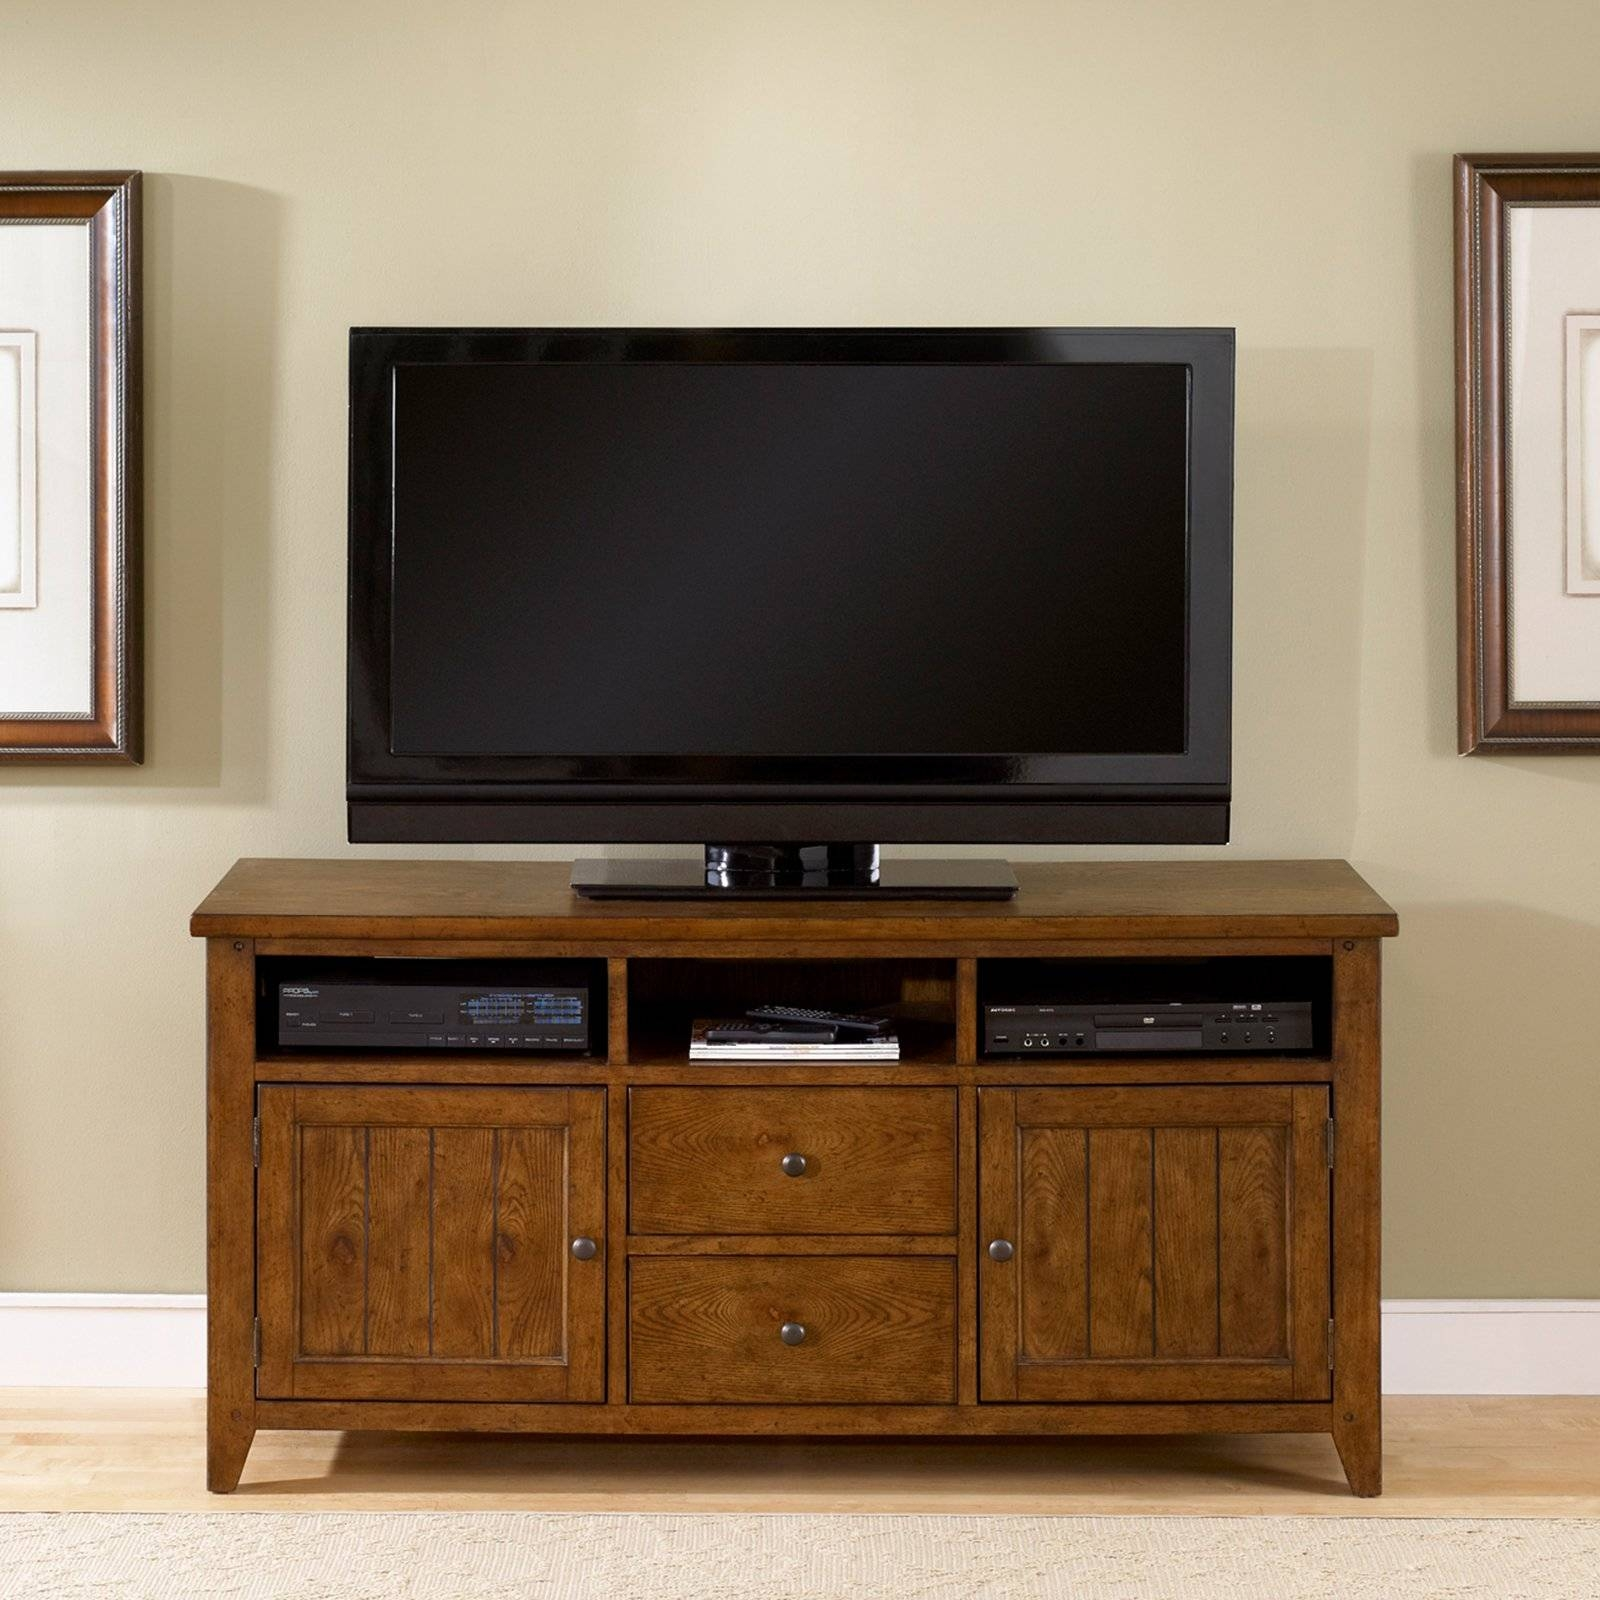 Rustic Tv Stands For Flat Screens — Wedgelog Design Regarding Unique Tv Stands For Flat Screens (View 3 of 15)